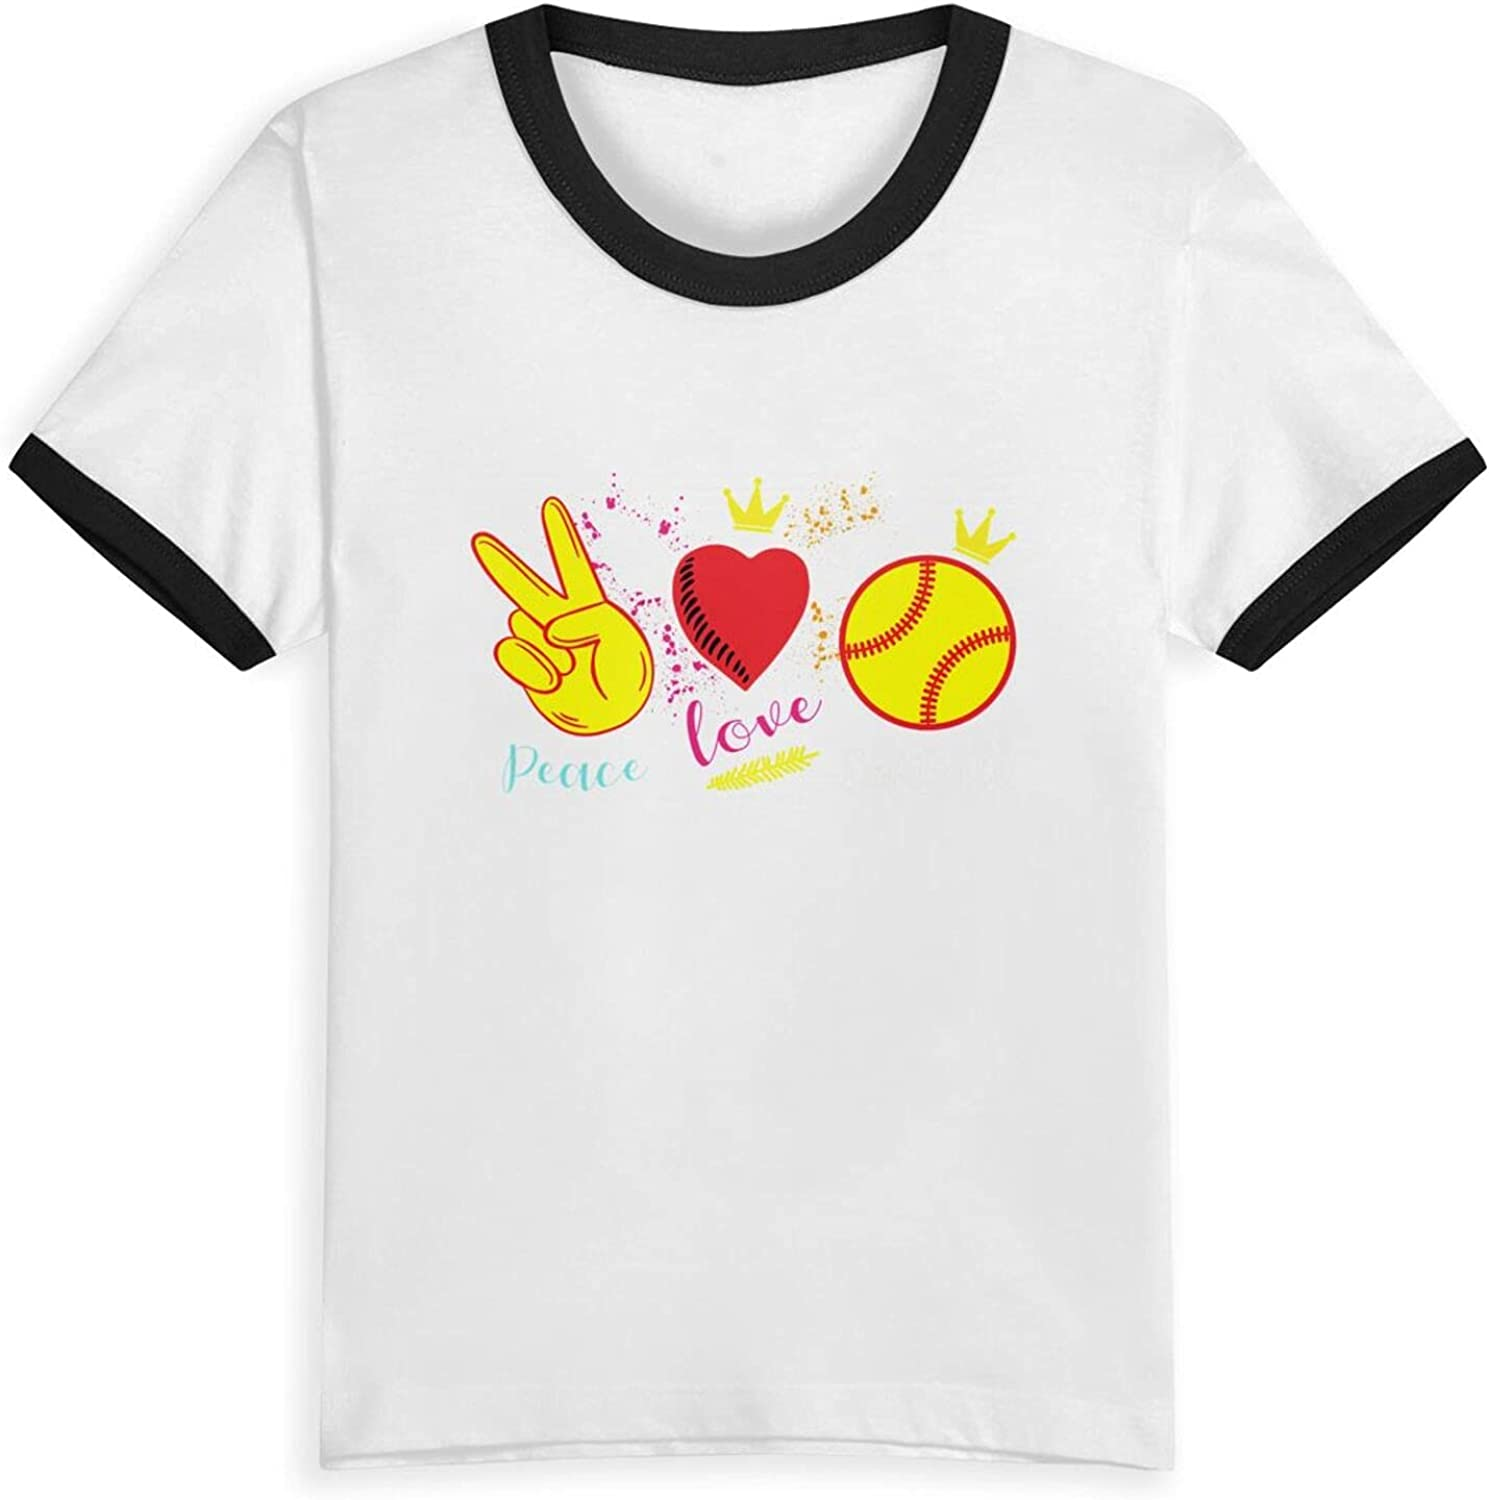 Peace Love Softball T-Shirts Novelty for Girls Tees with Cool Designs